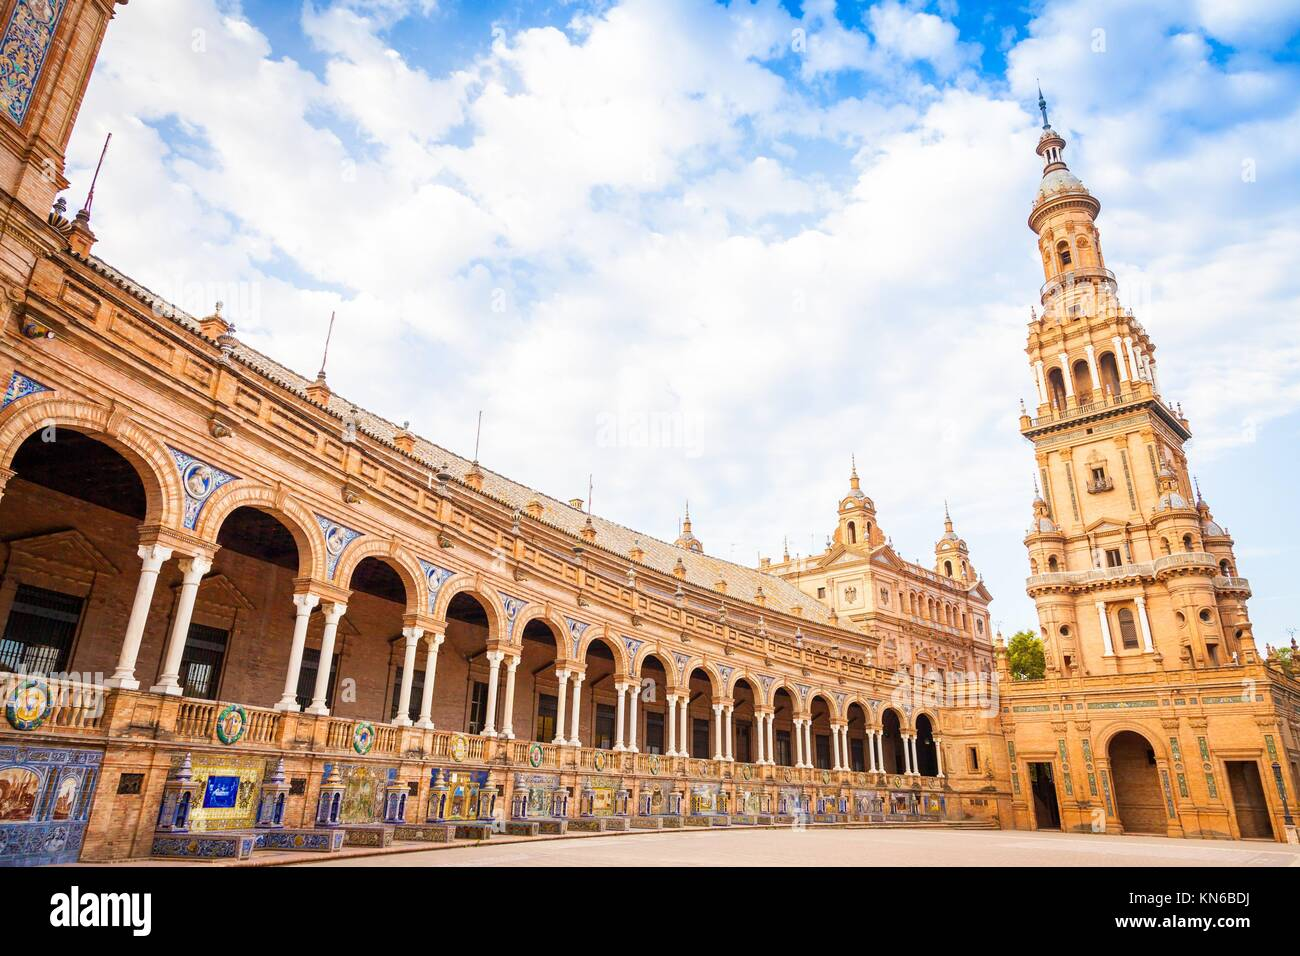 Spain, Seville. Spain Square, a landmark example of the Renaissance Revival style in Spanish architecture. - Stock Image